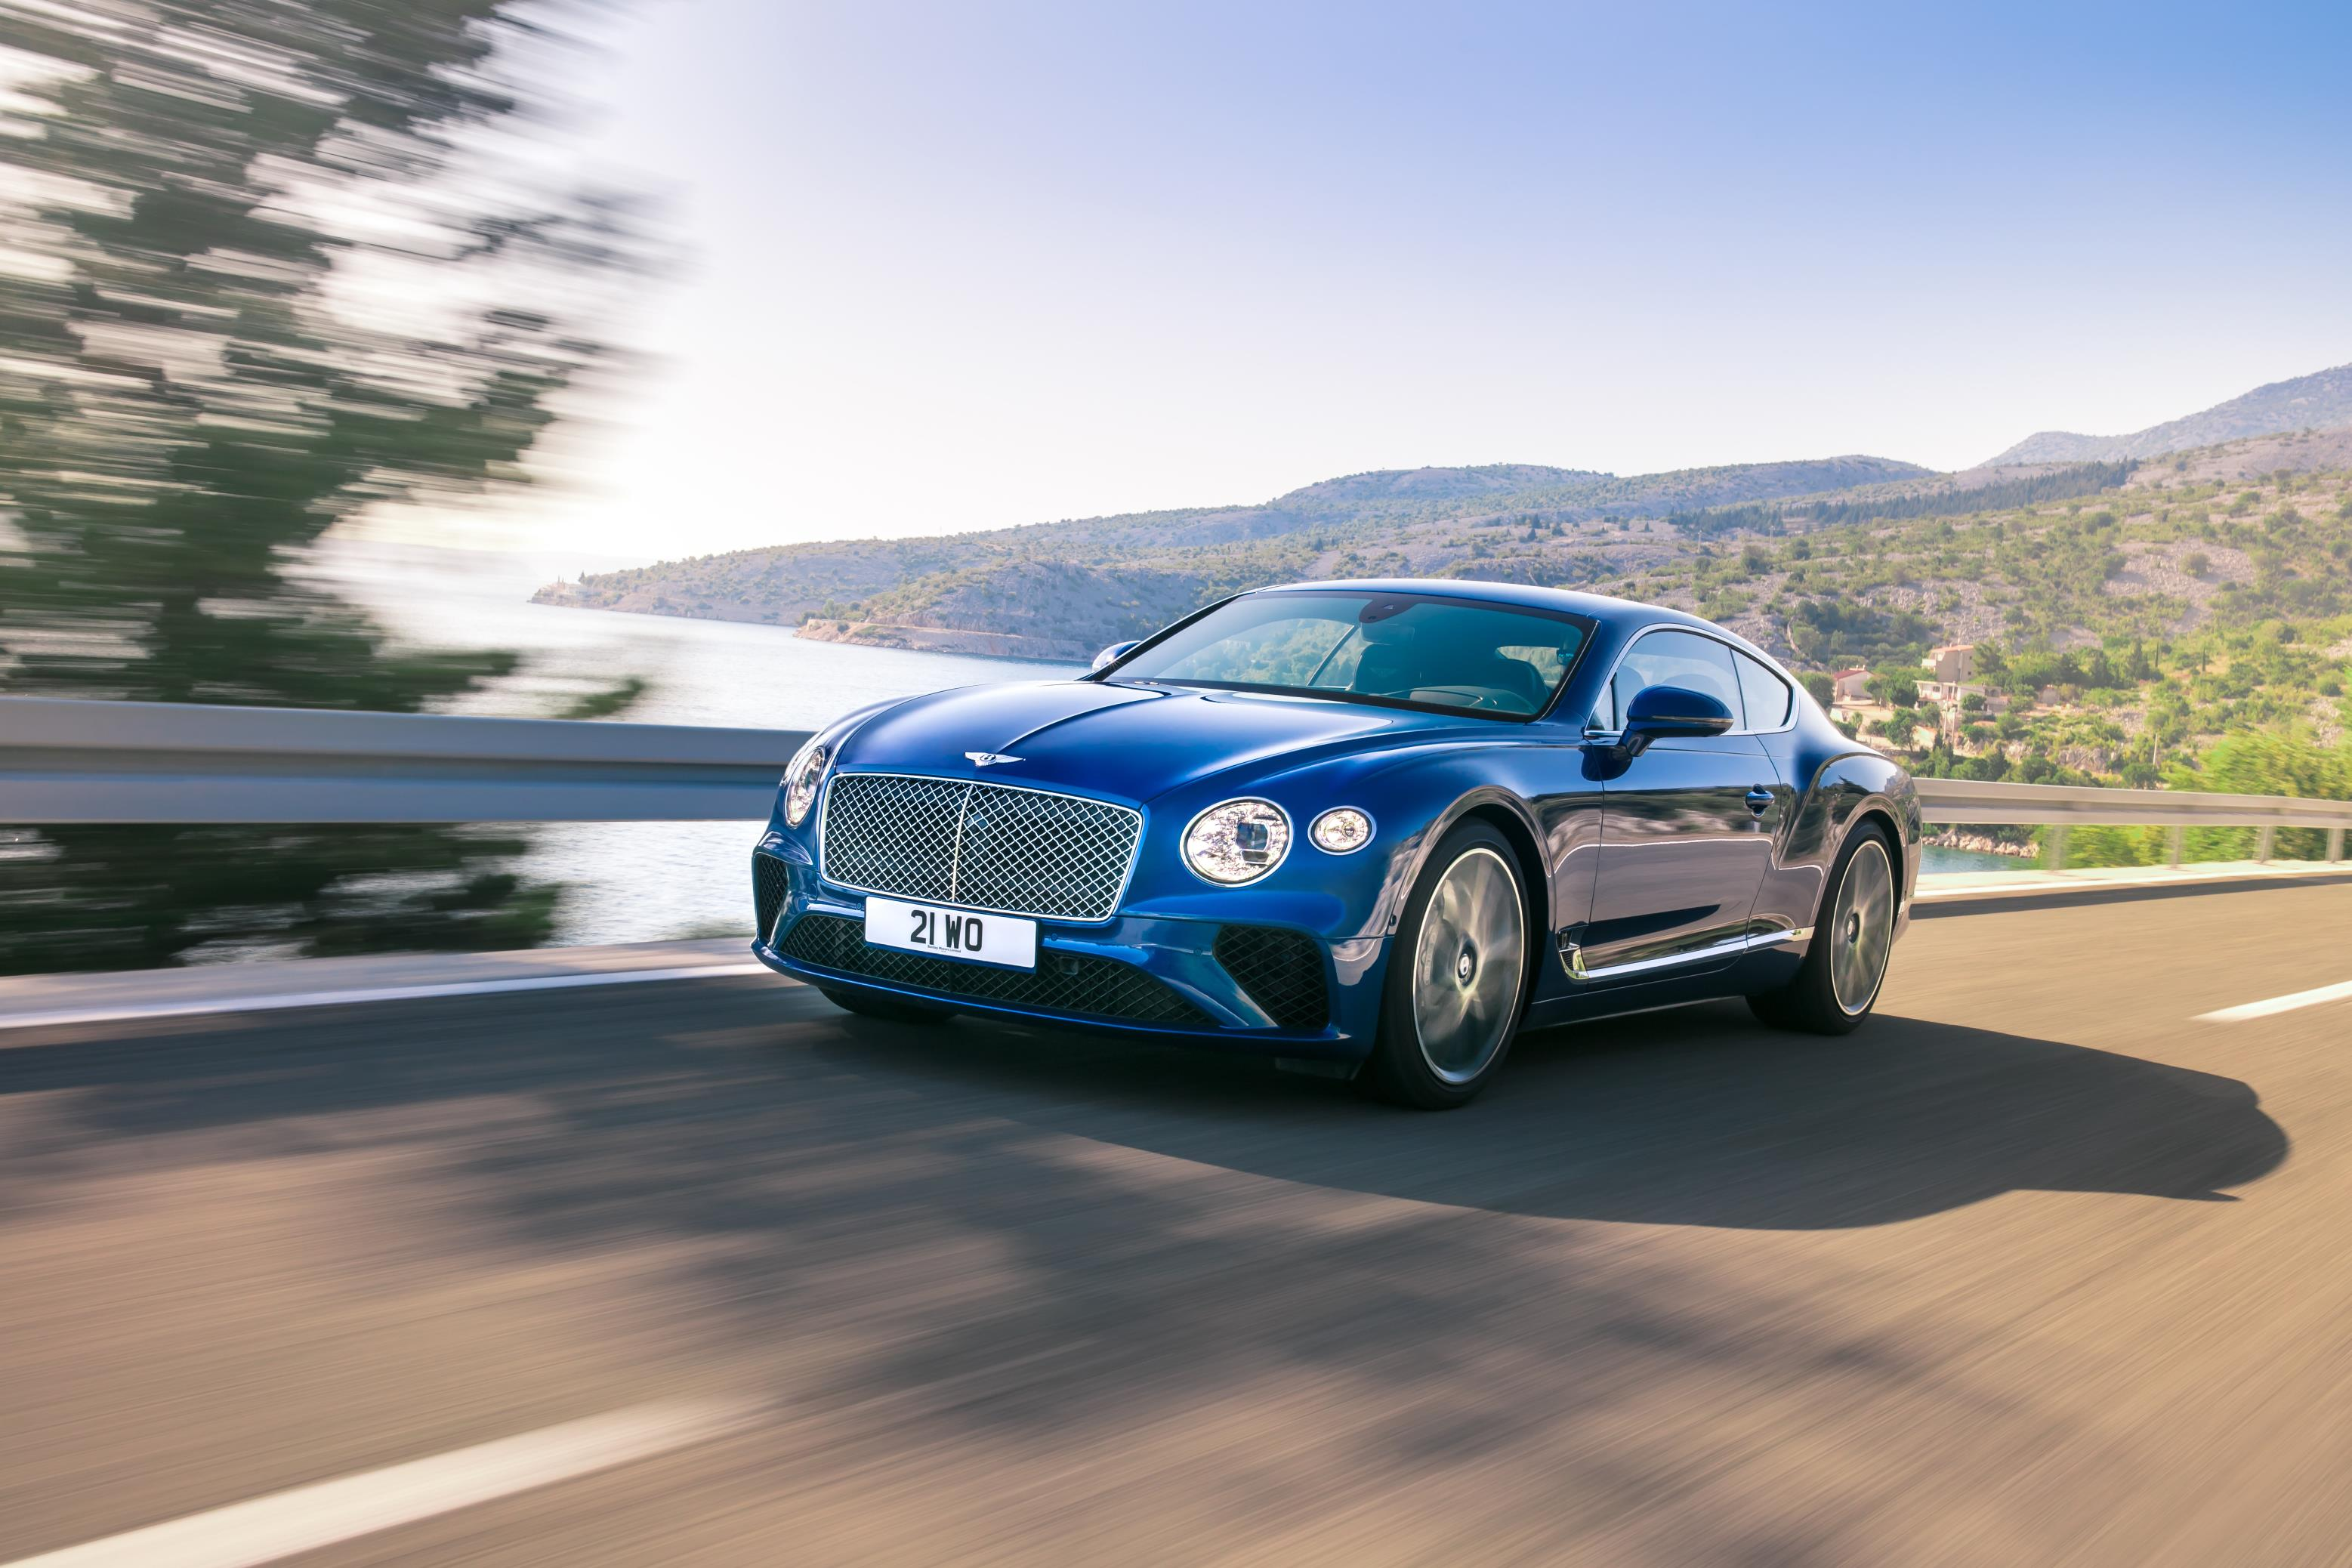 Incroyable New Continental GT U2013 1